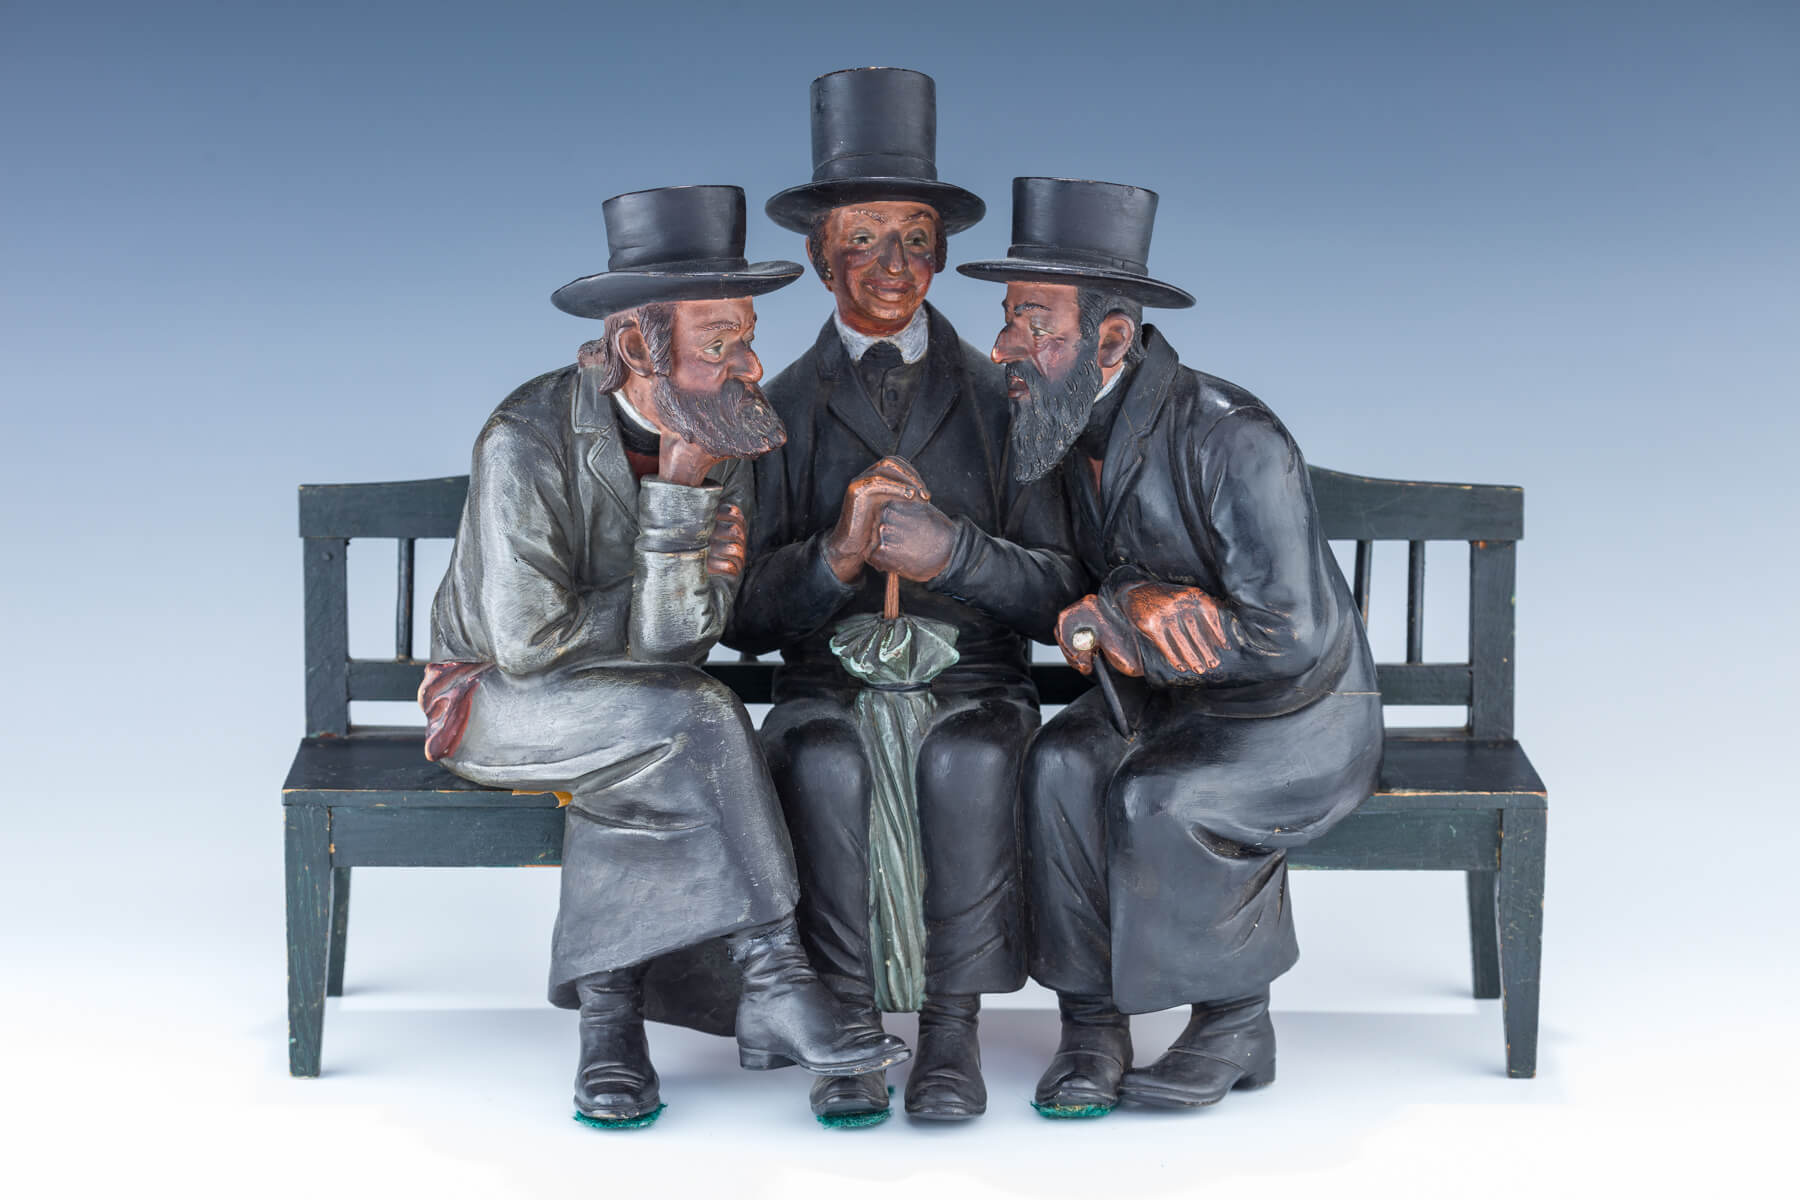 30. A Plaster Sculpture Of Three Jews On A Bench